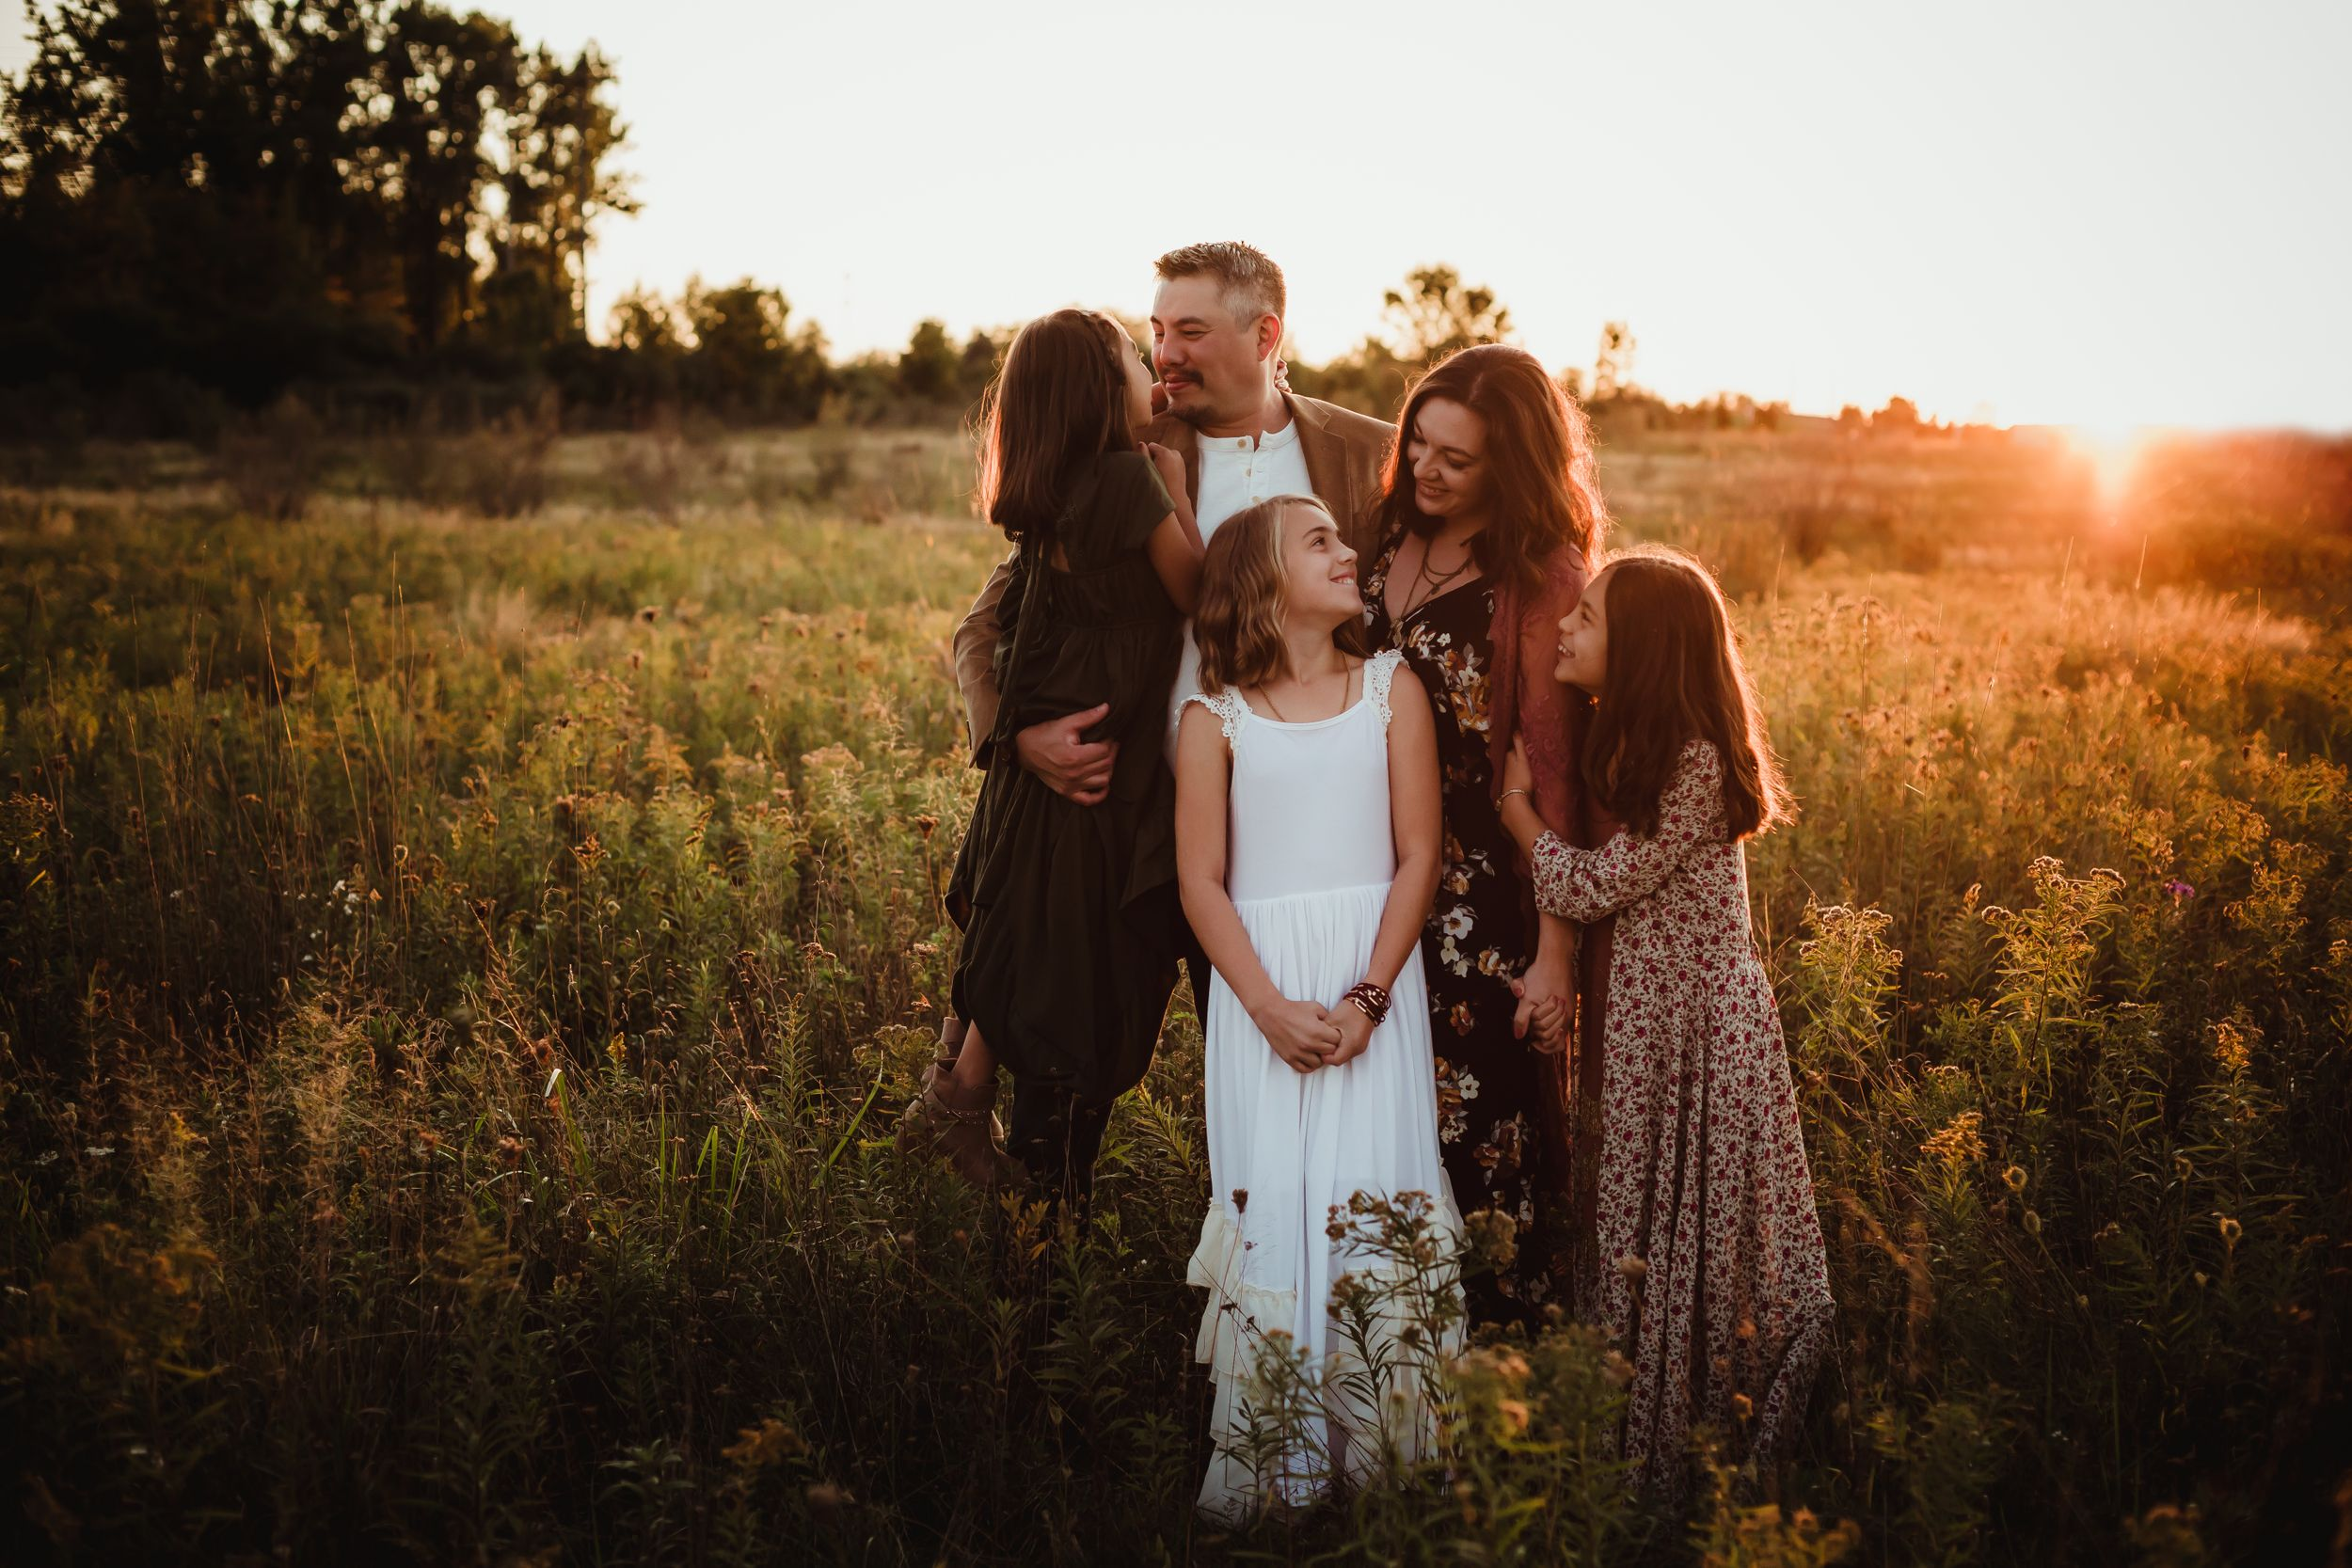 Father, mother, and three daughters embracing and smiling at each other in a field with a golden sunset behind them.